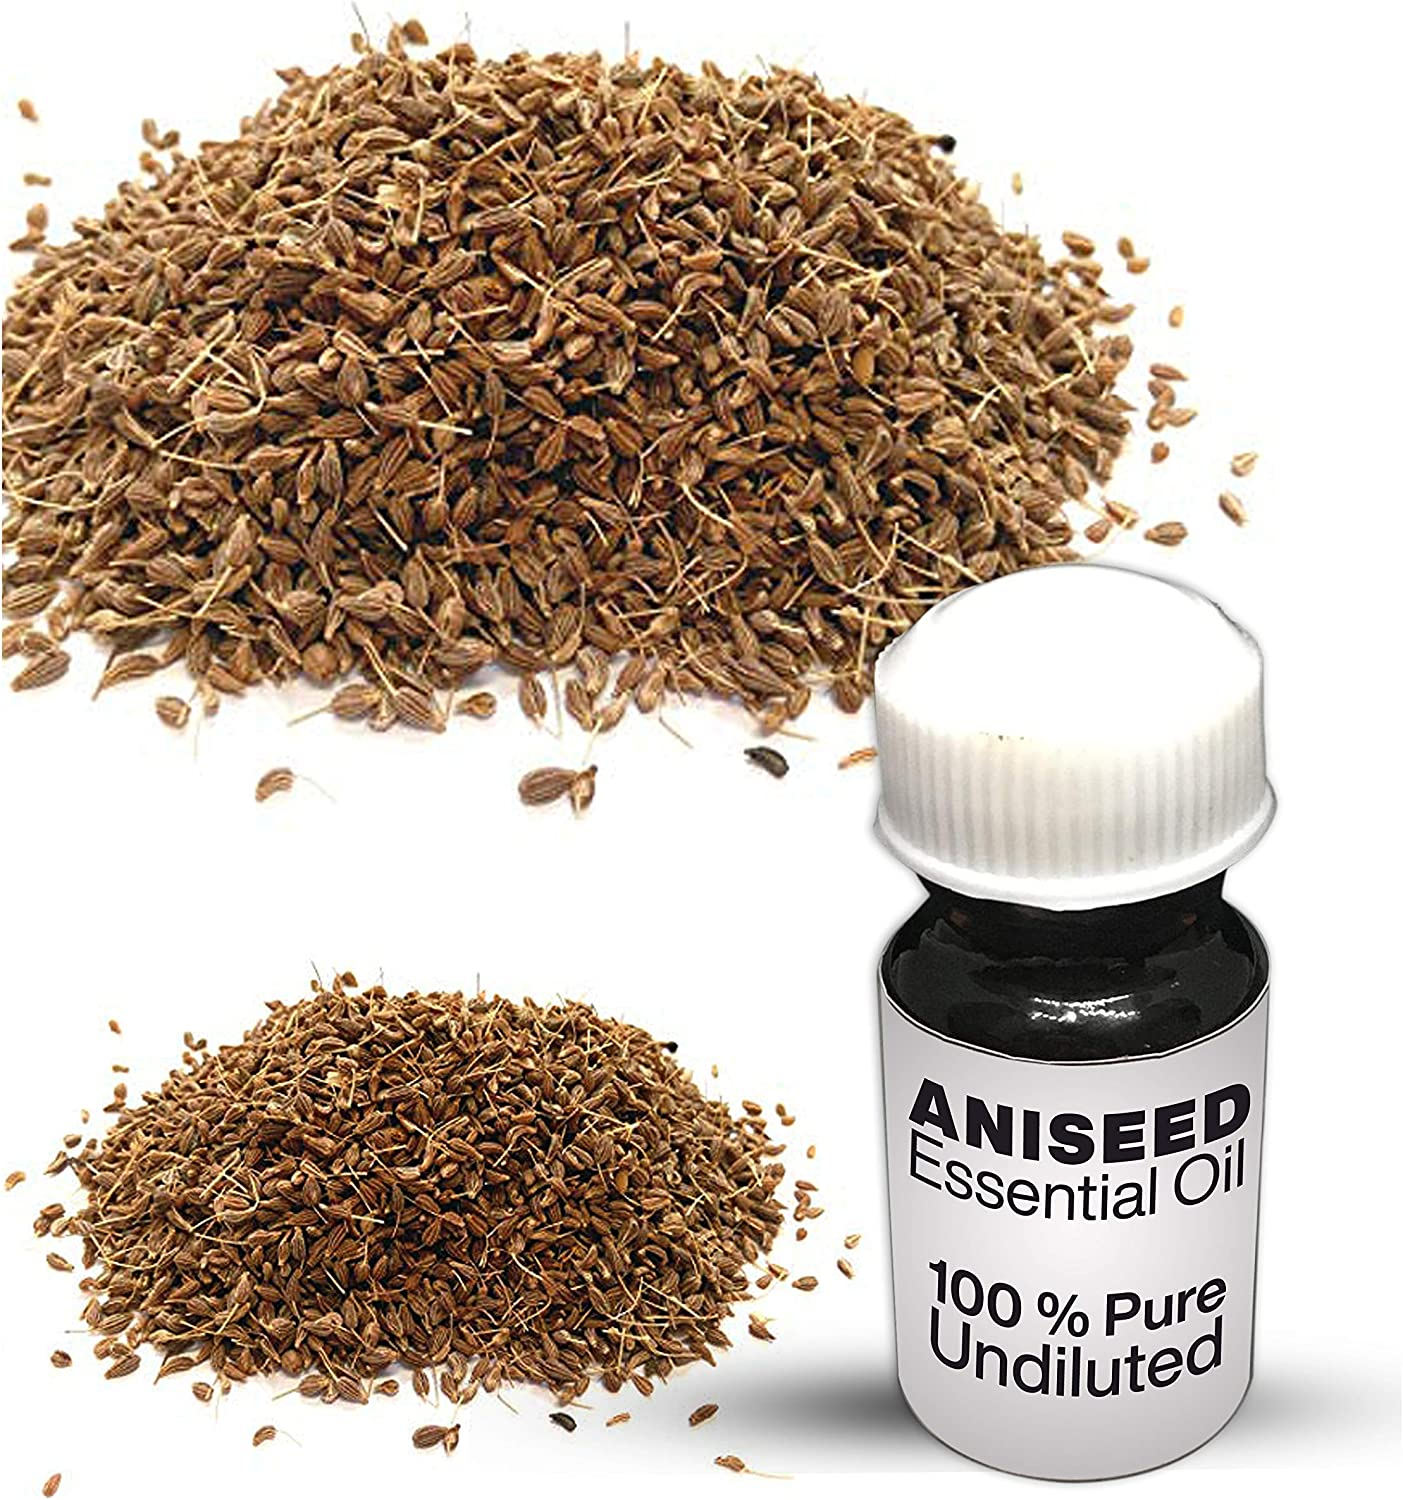 ! Super beauty product restock quality top! Aniseed Essential Oil Elegant 100% Oi Pure Undiluted